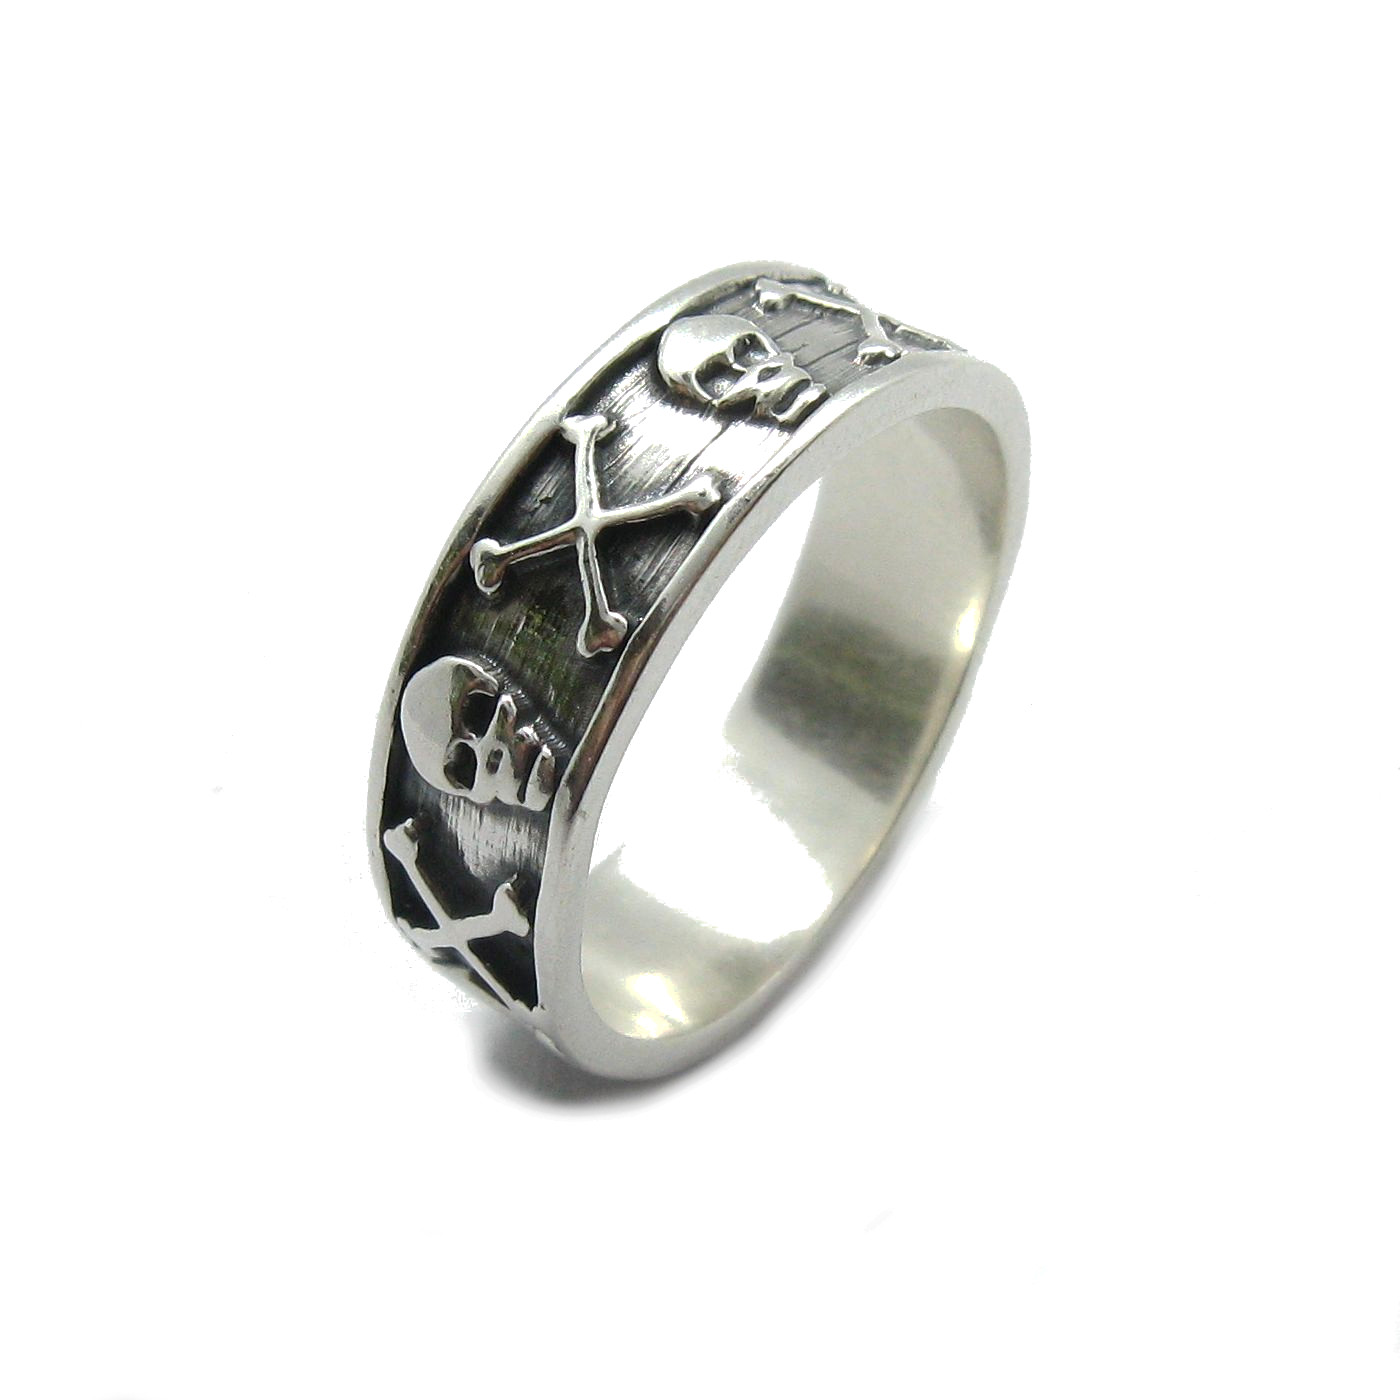 Silver ring - R001798